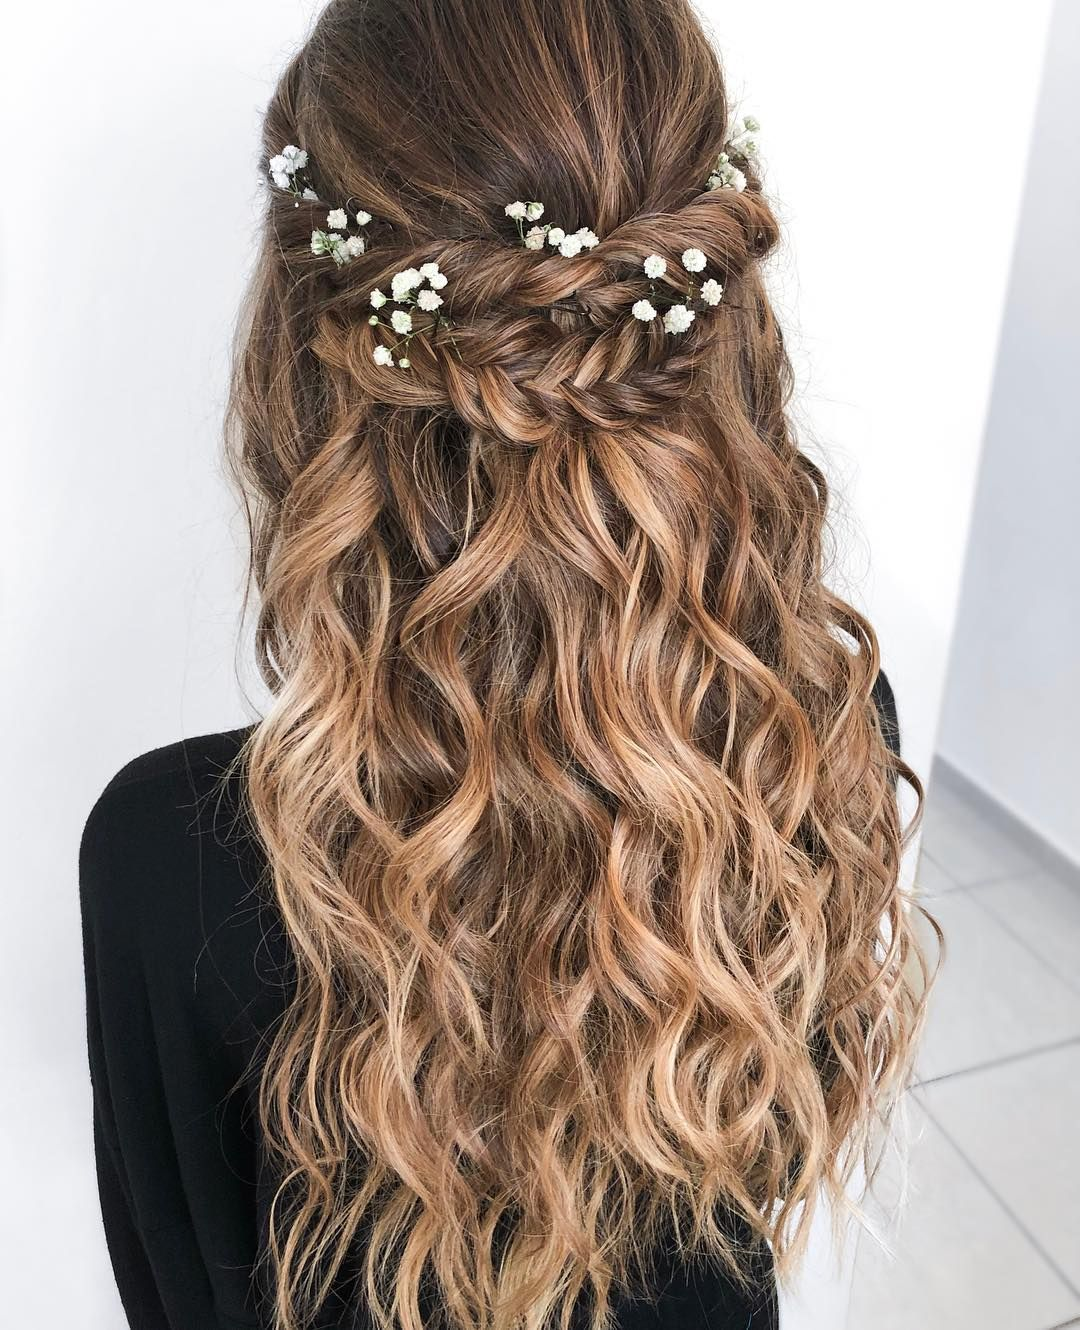 Boho Chic Wedding Hair Style For Long Hair With Flowers Wedding Hairstyles Half Up Half Down Hair And Makeup By Hair Styles Long Hair Styles Boho Wedding Hair